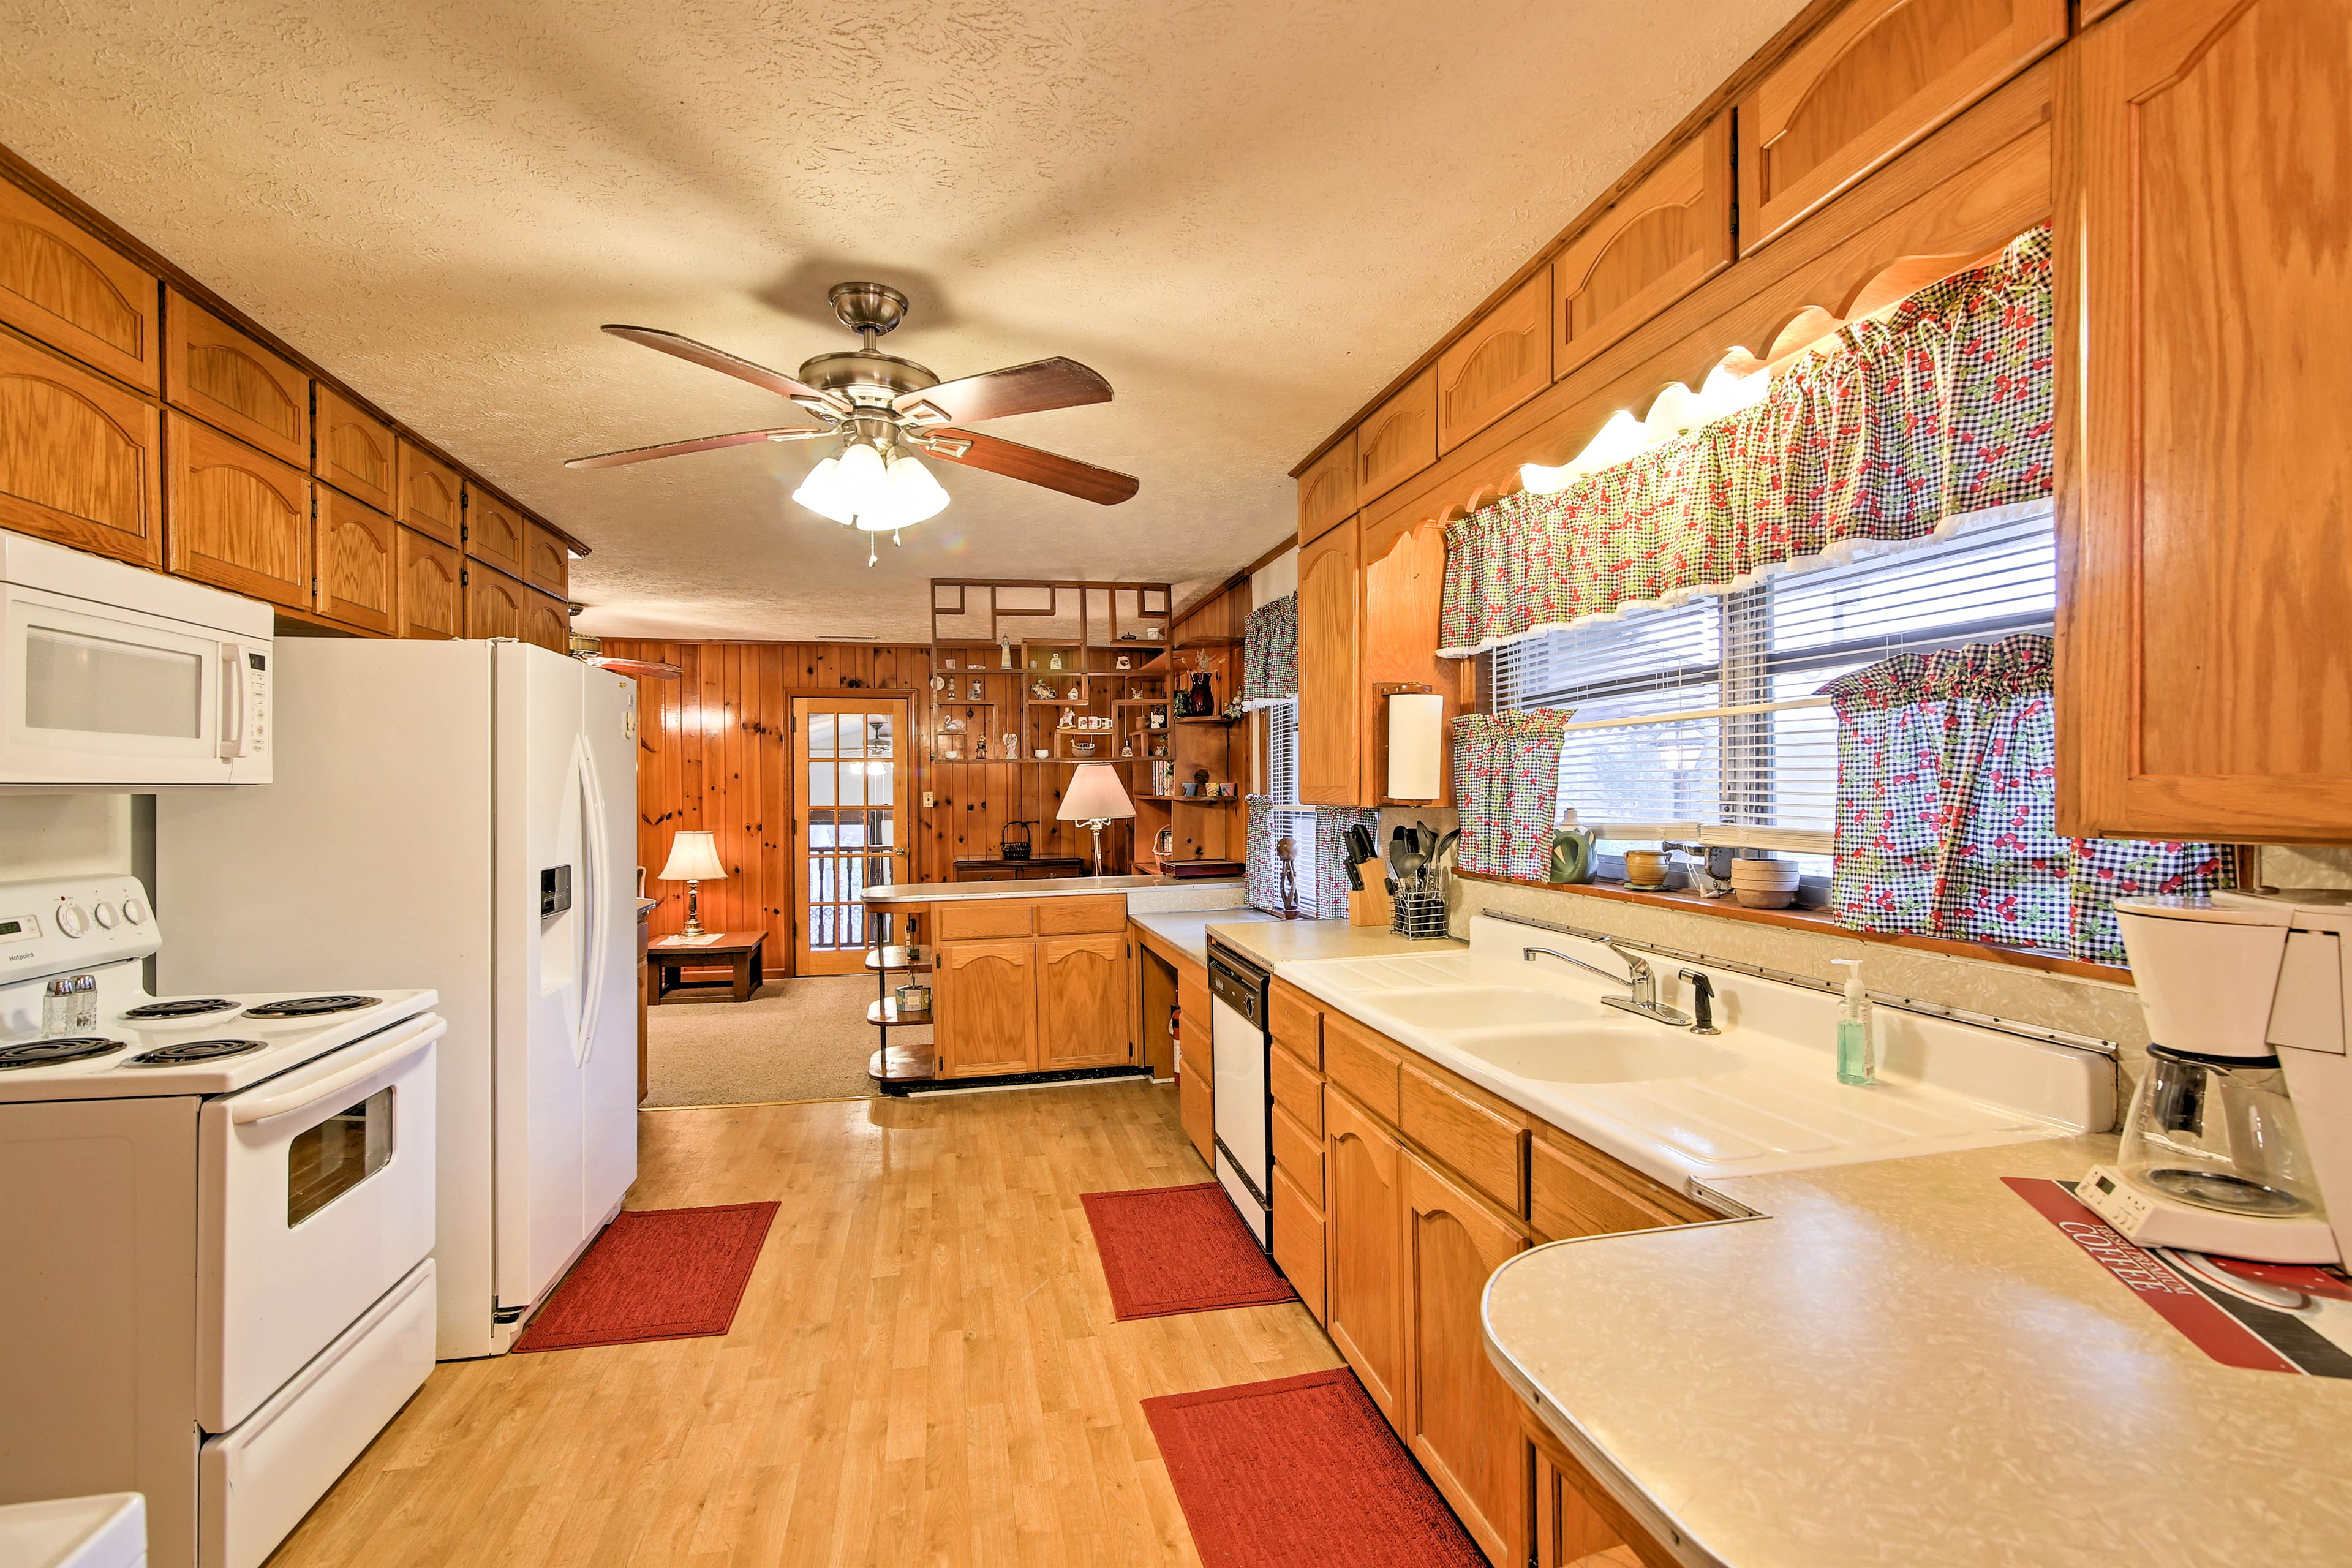 Hardwood floors and broad picture windows detail the fully equipped kitchen.